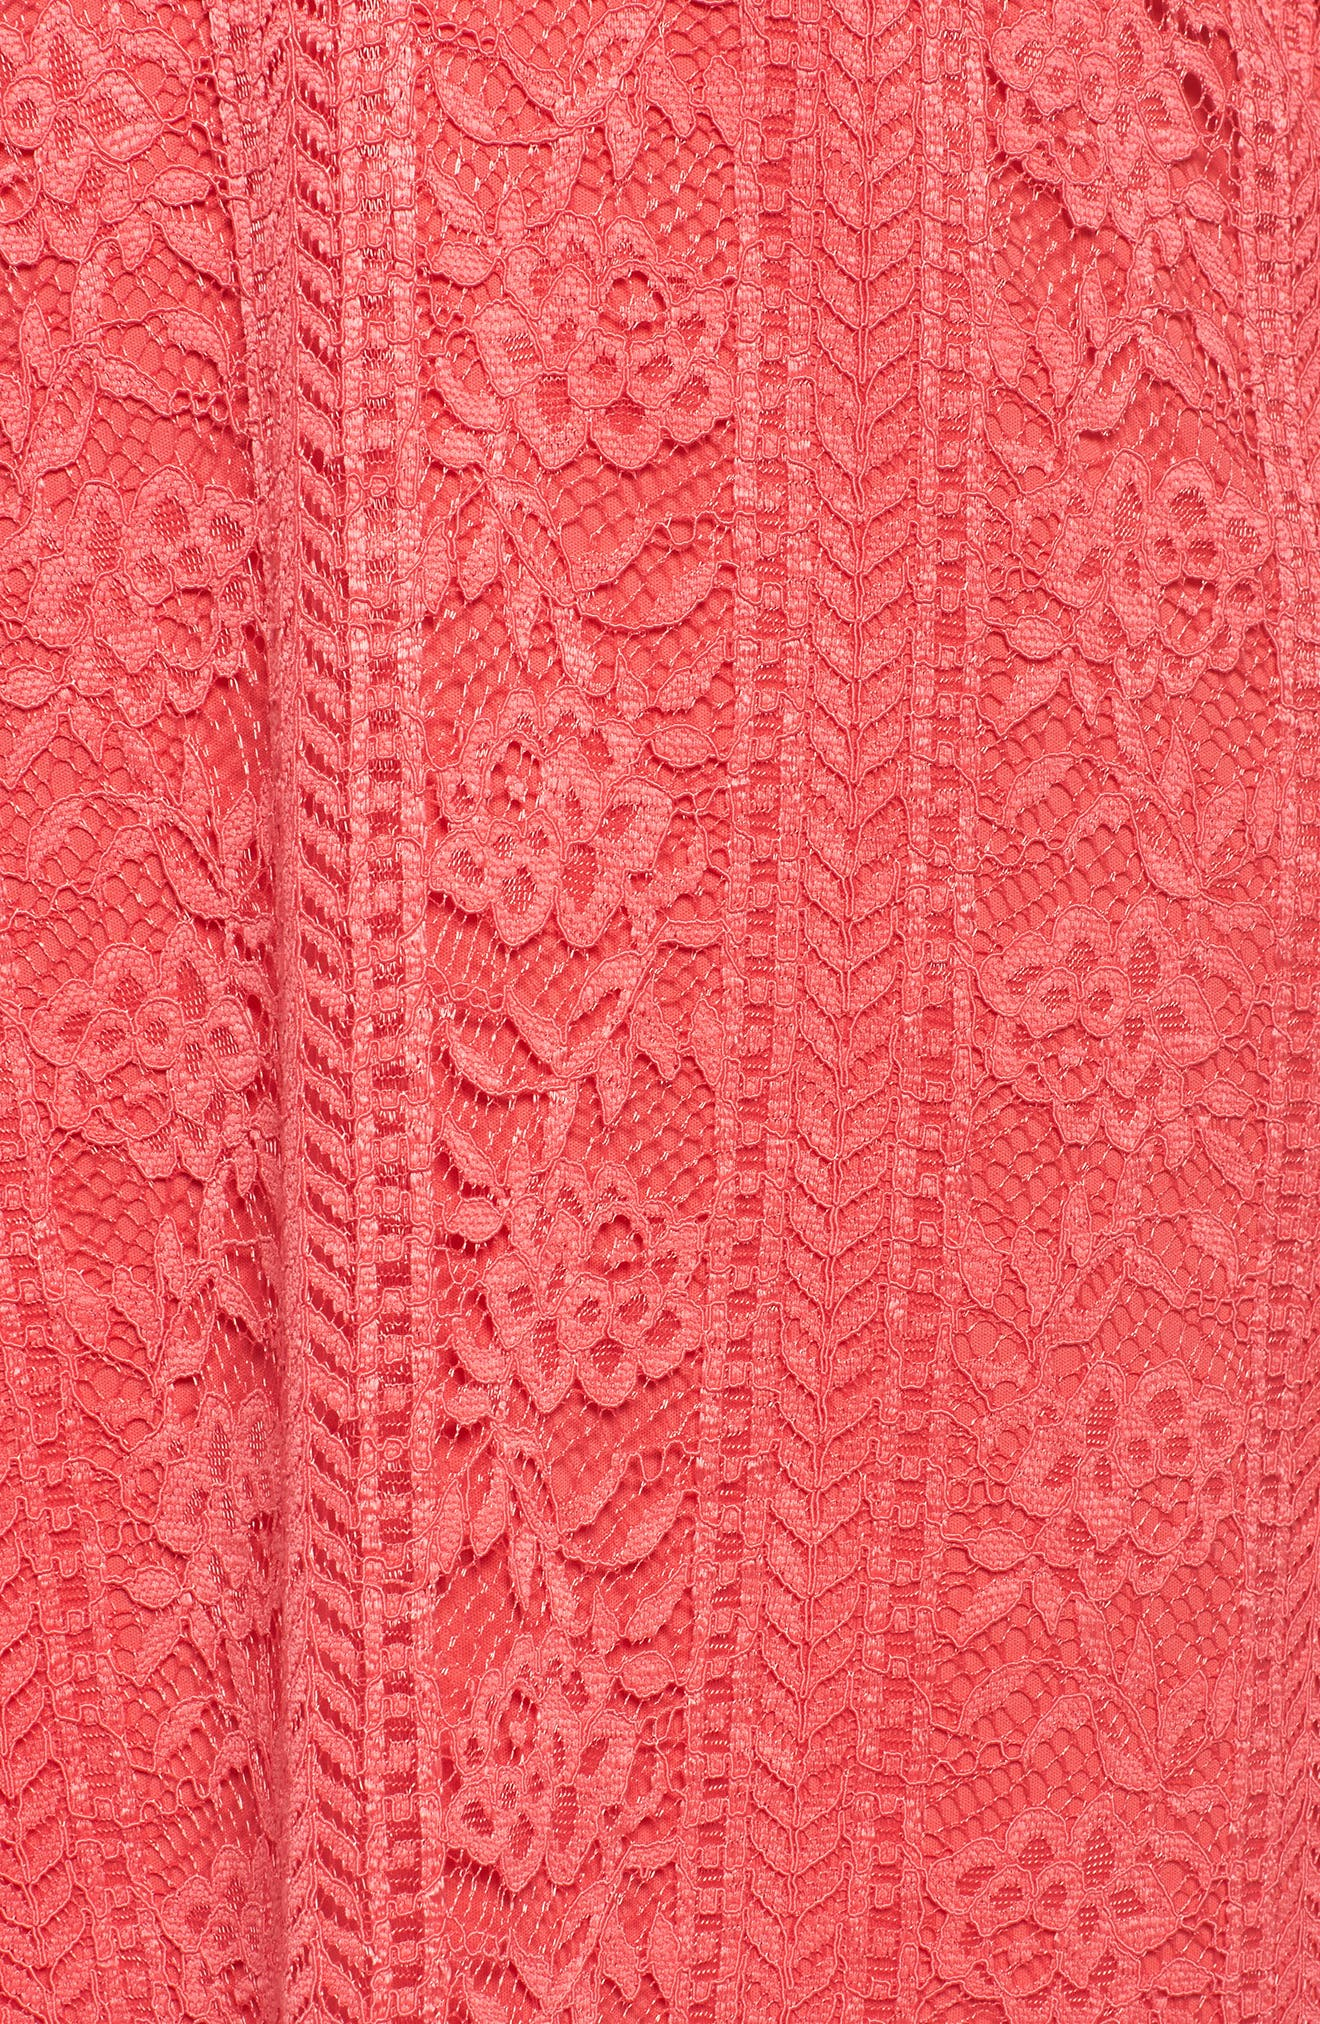 Bell Sleeve Lace Shift Dress,                             Alternate thumbnail 5, color,                             Hot Coral